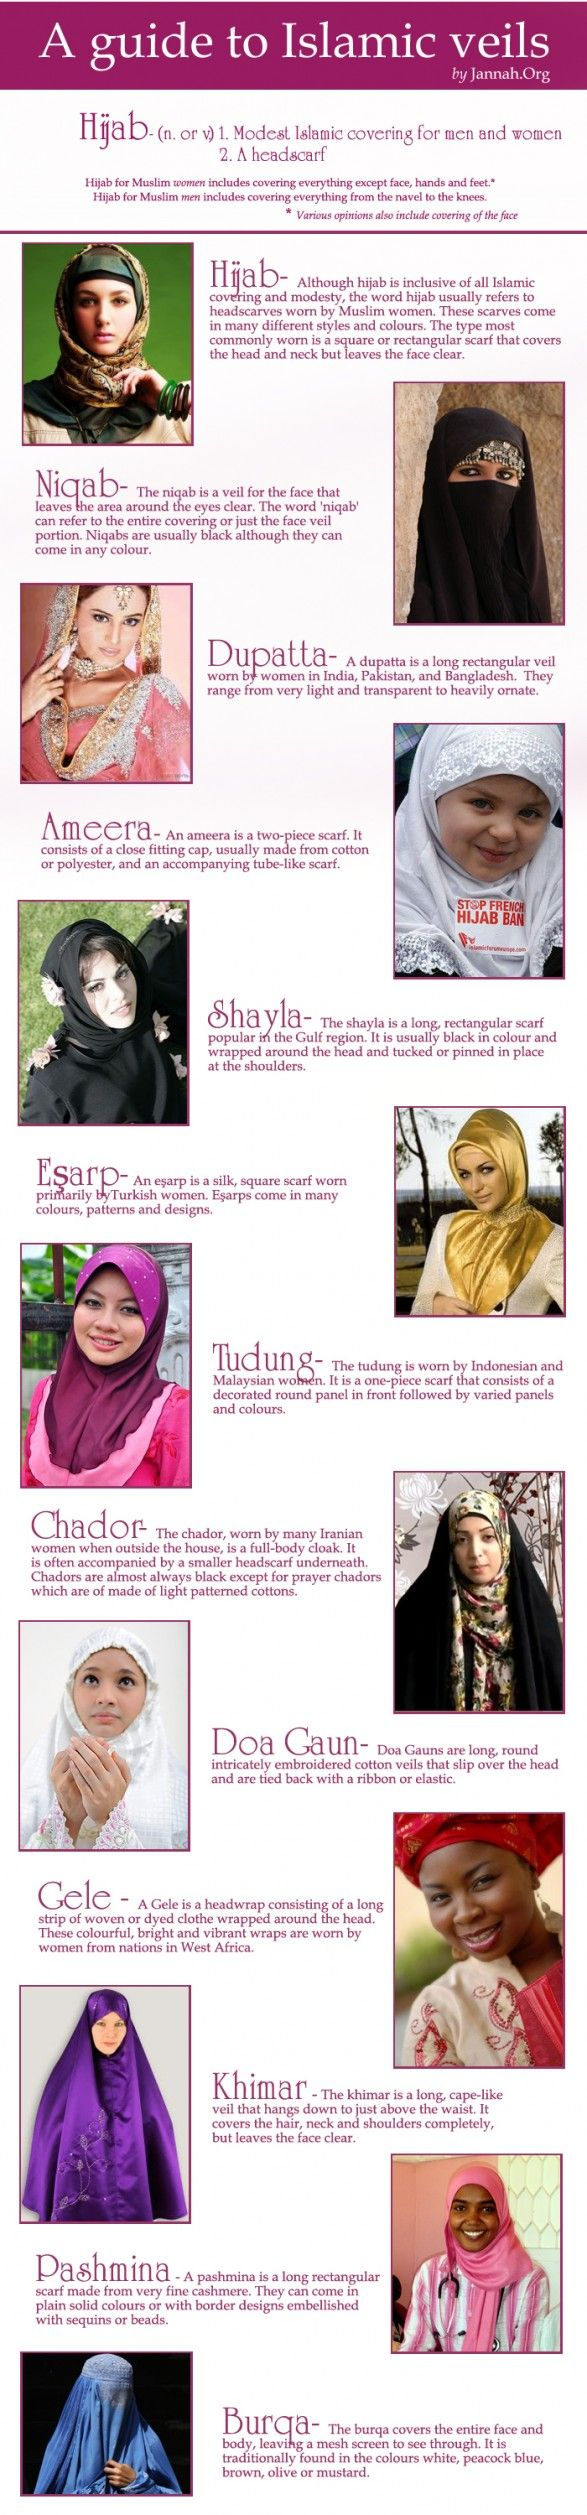 Finally, A more complete Guide to Islamic Head Coverings (hijab scarves, niqab, dupatta, amira, shayla, esqarp, tudung, chador, doa gaun, gele, khimar, pashmina and burqa)